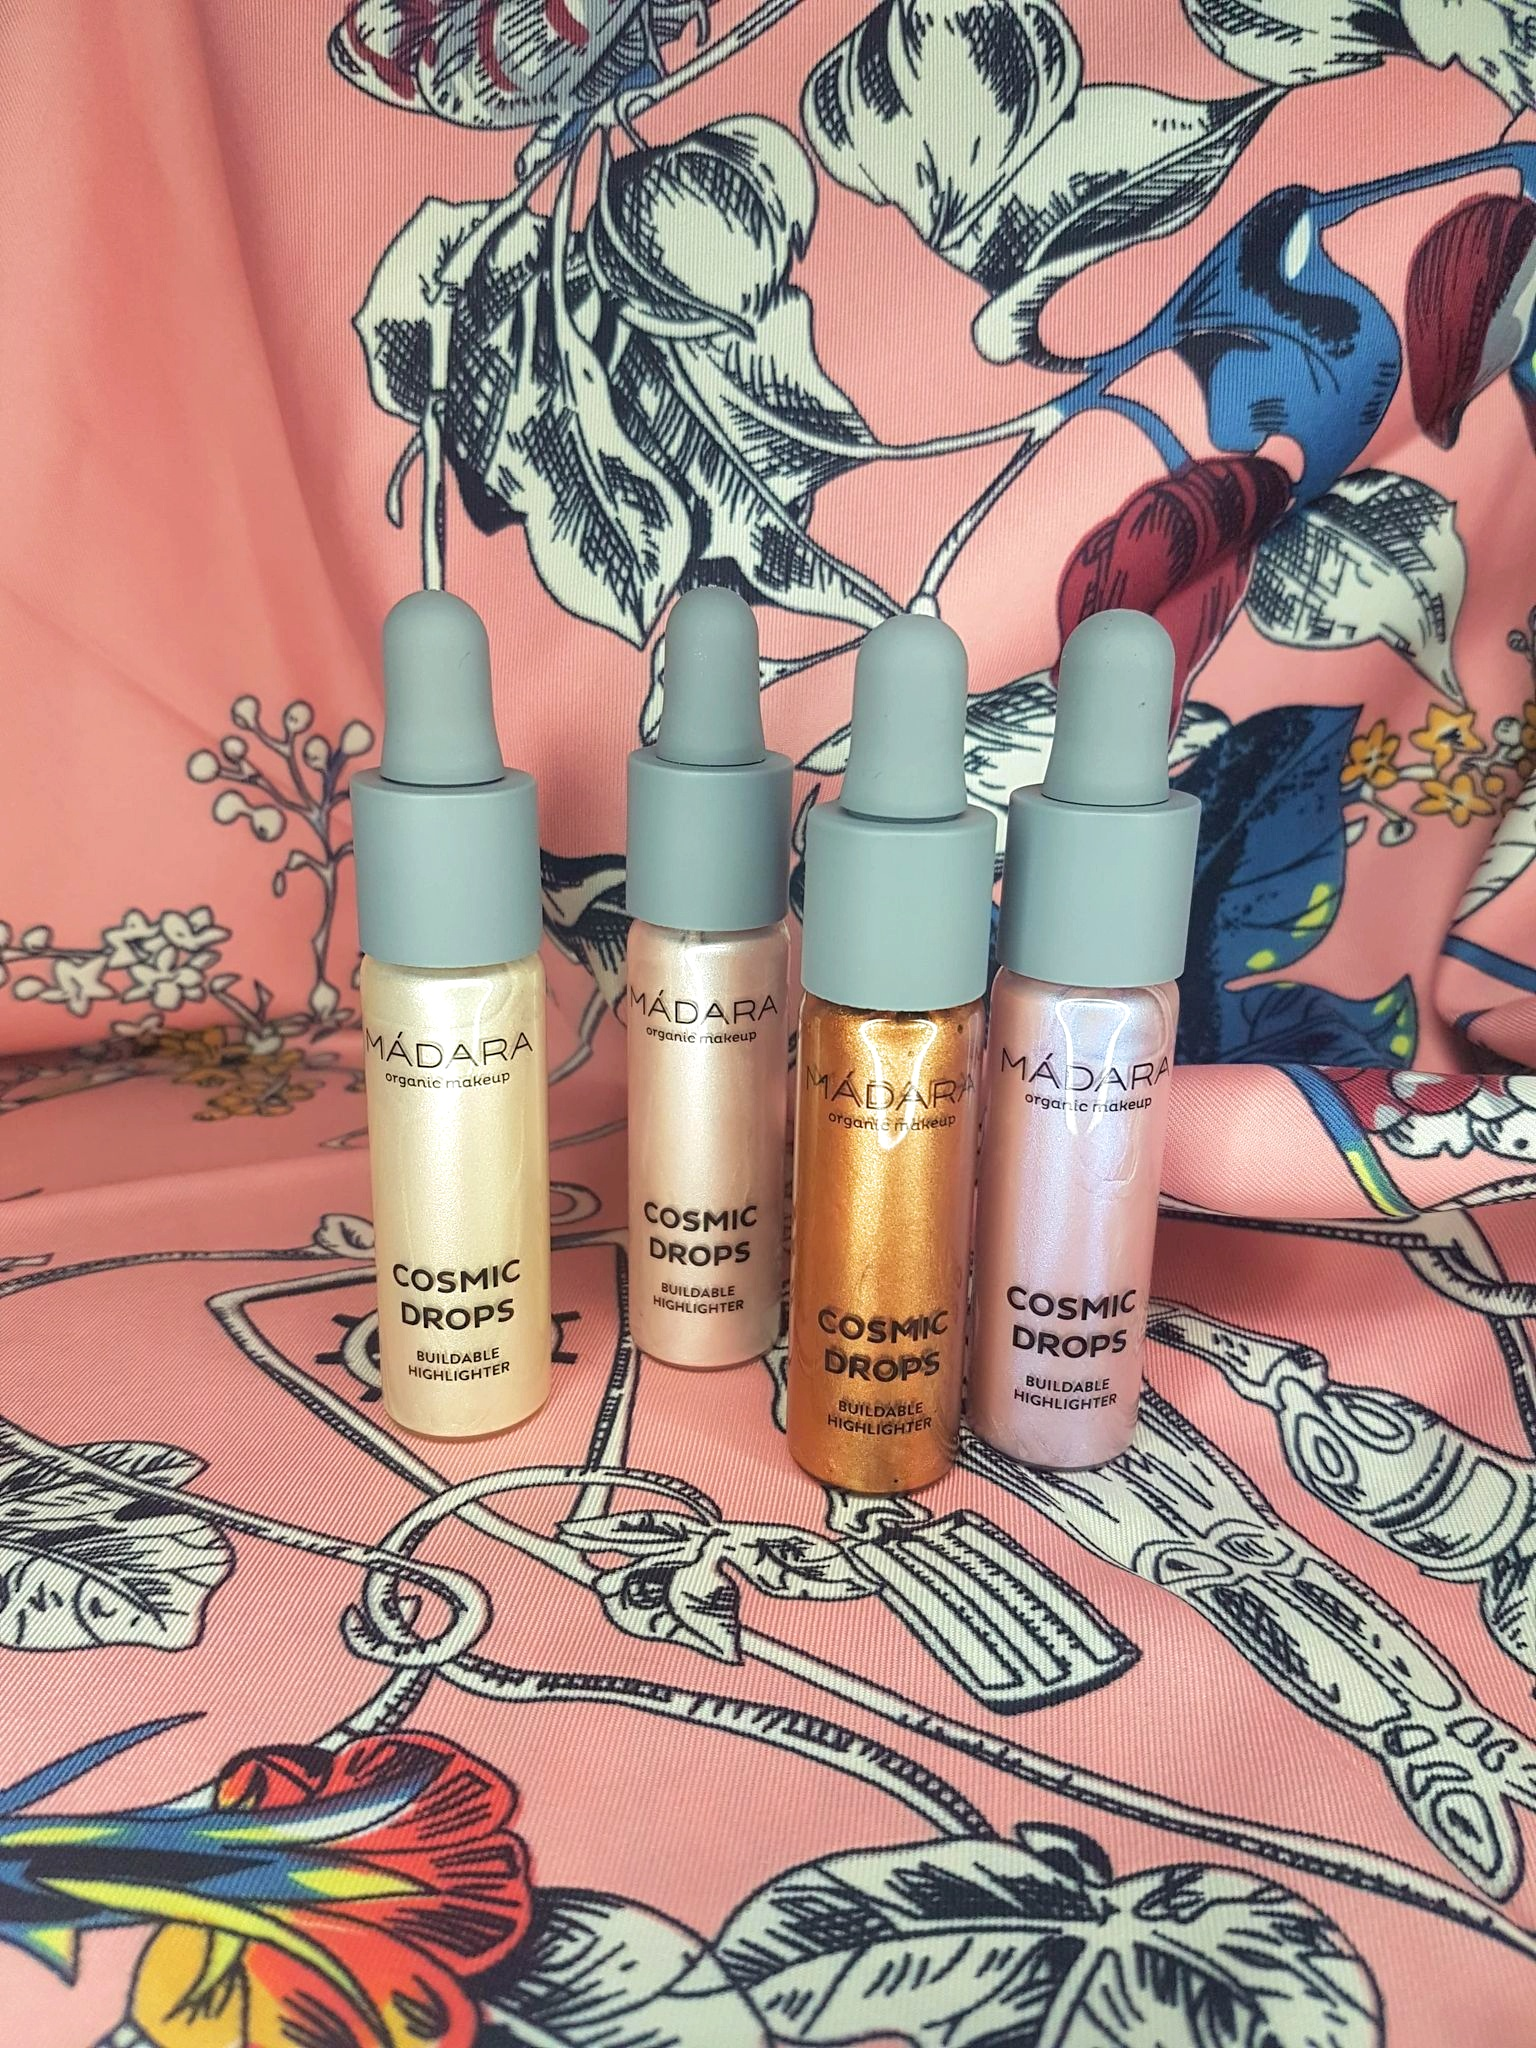 four shades of Madara Cosmic Drops lined up against a pink patterned silk. L-R: Naked Chromosphere, Cosmic Rose, Burning Meteorite, Aurora Borealis